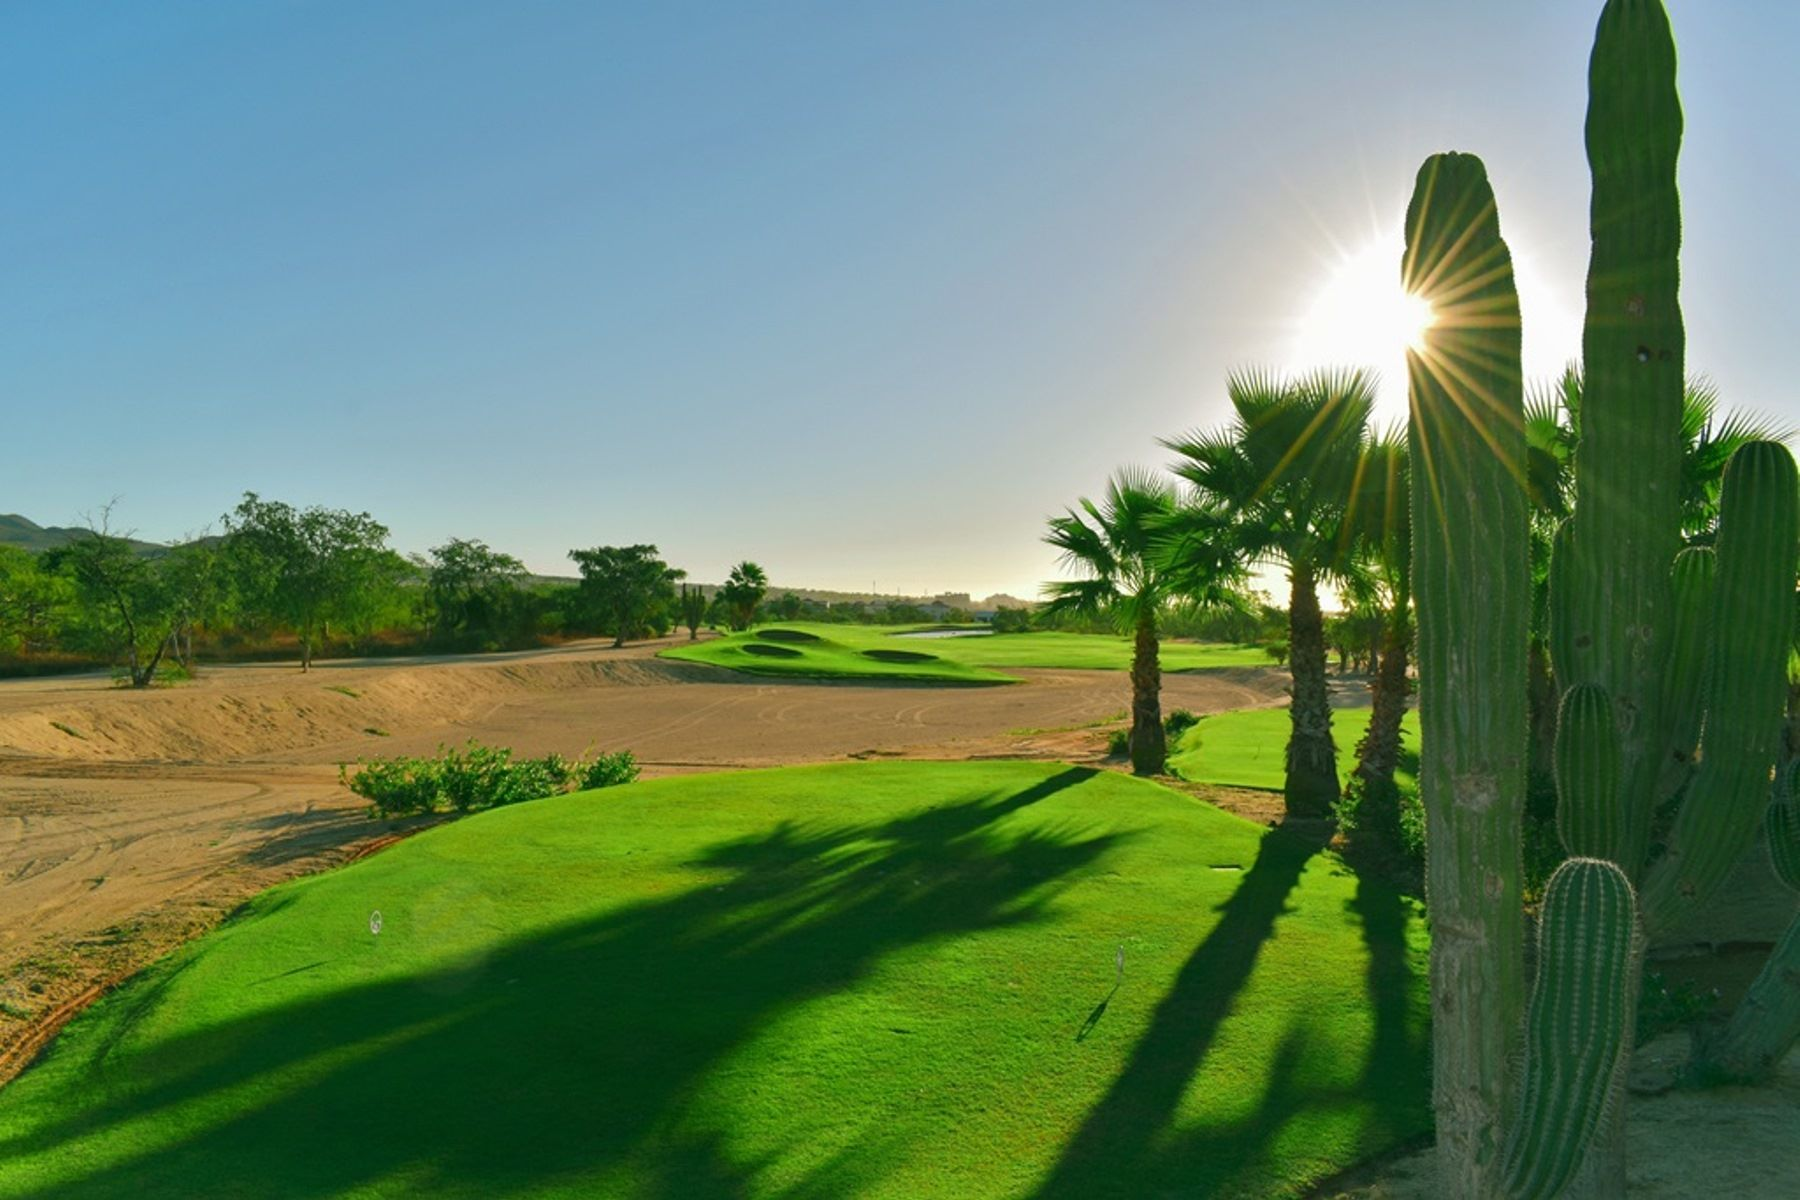 Land for Sale at Lote 103 Country Club Other Baja California Sur, Mexico